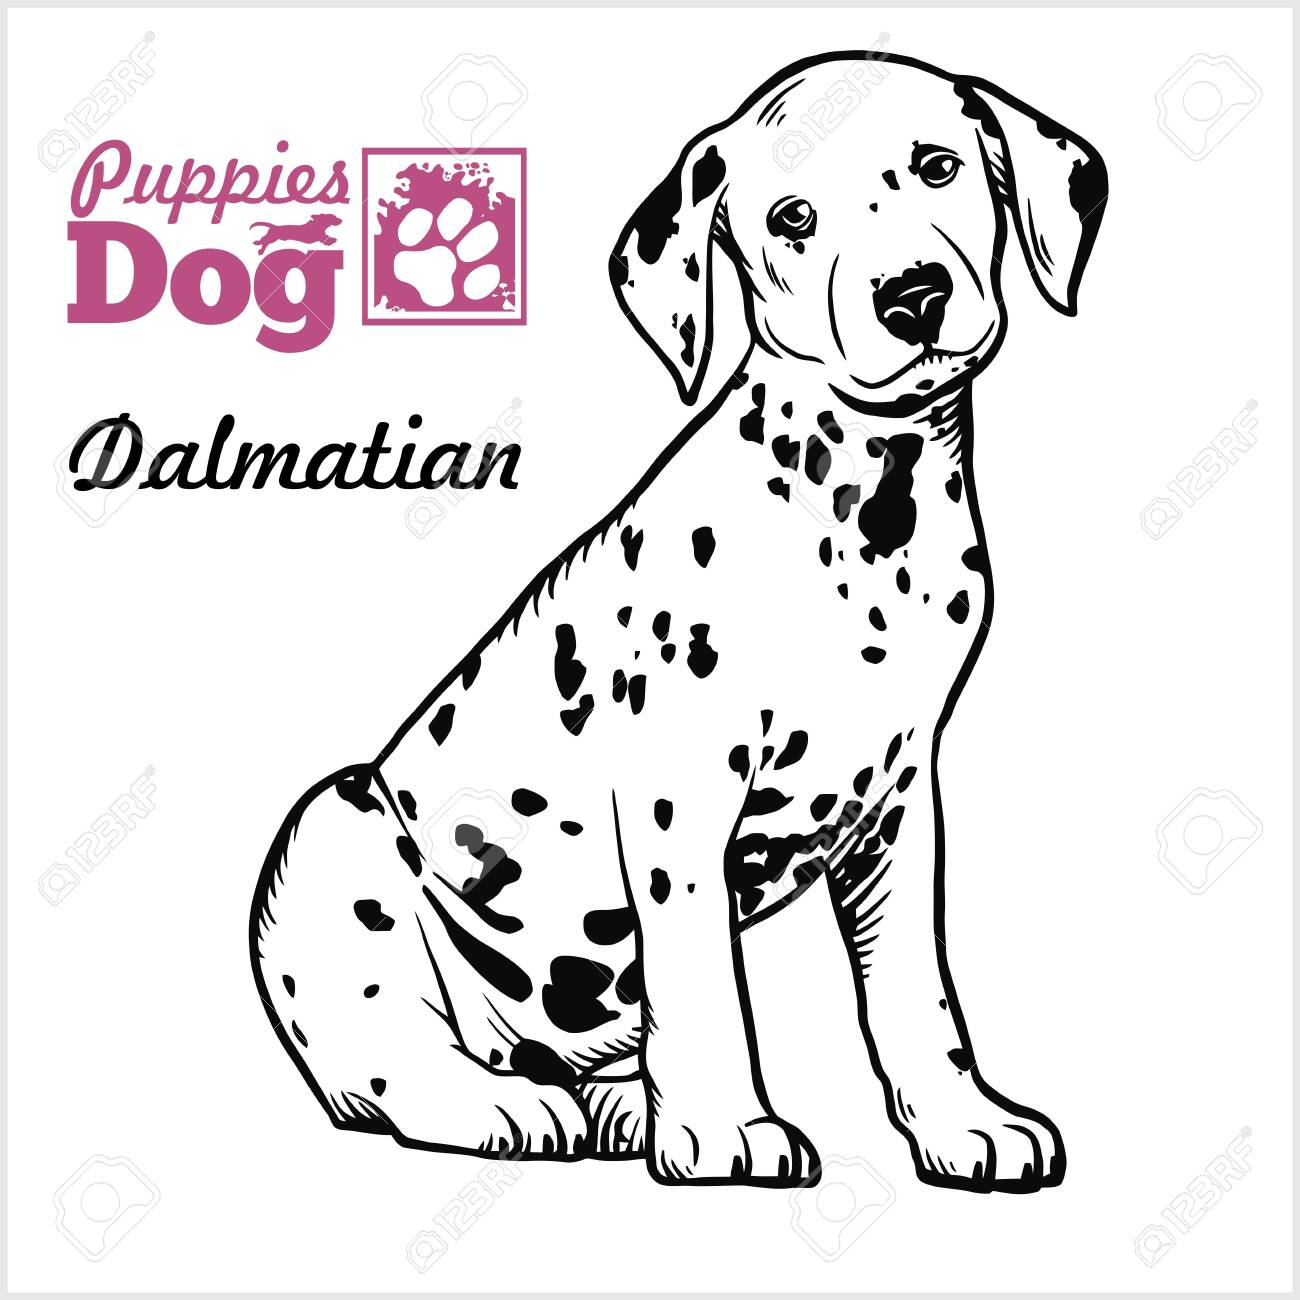 Dalmatian Puppy Sitting Drawing By Hand Sketch Engraving Style Royalty Free Cliparts Vectors And Stock Illustration Image 142050807